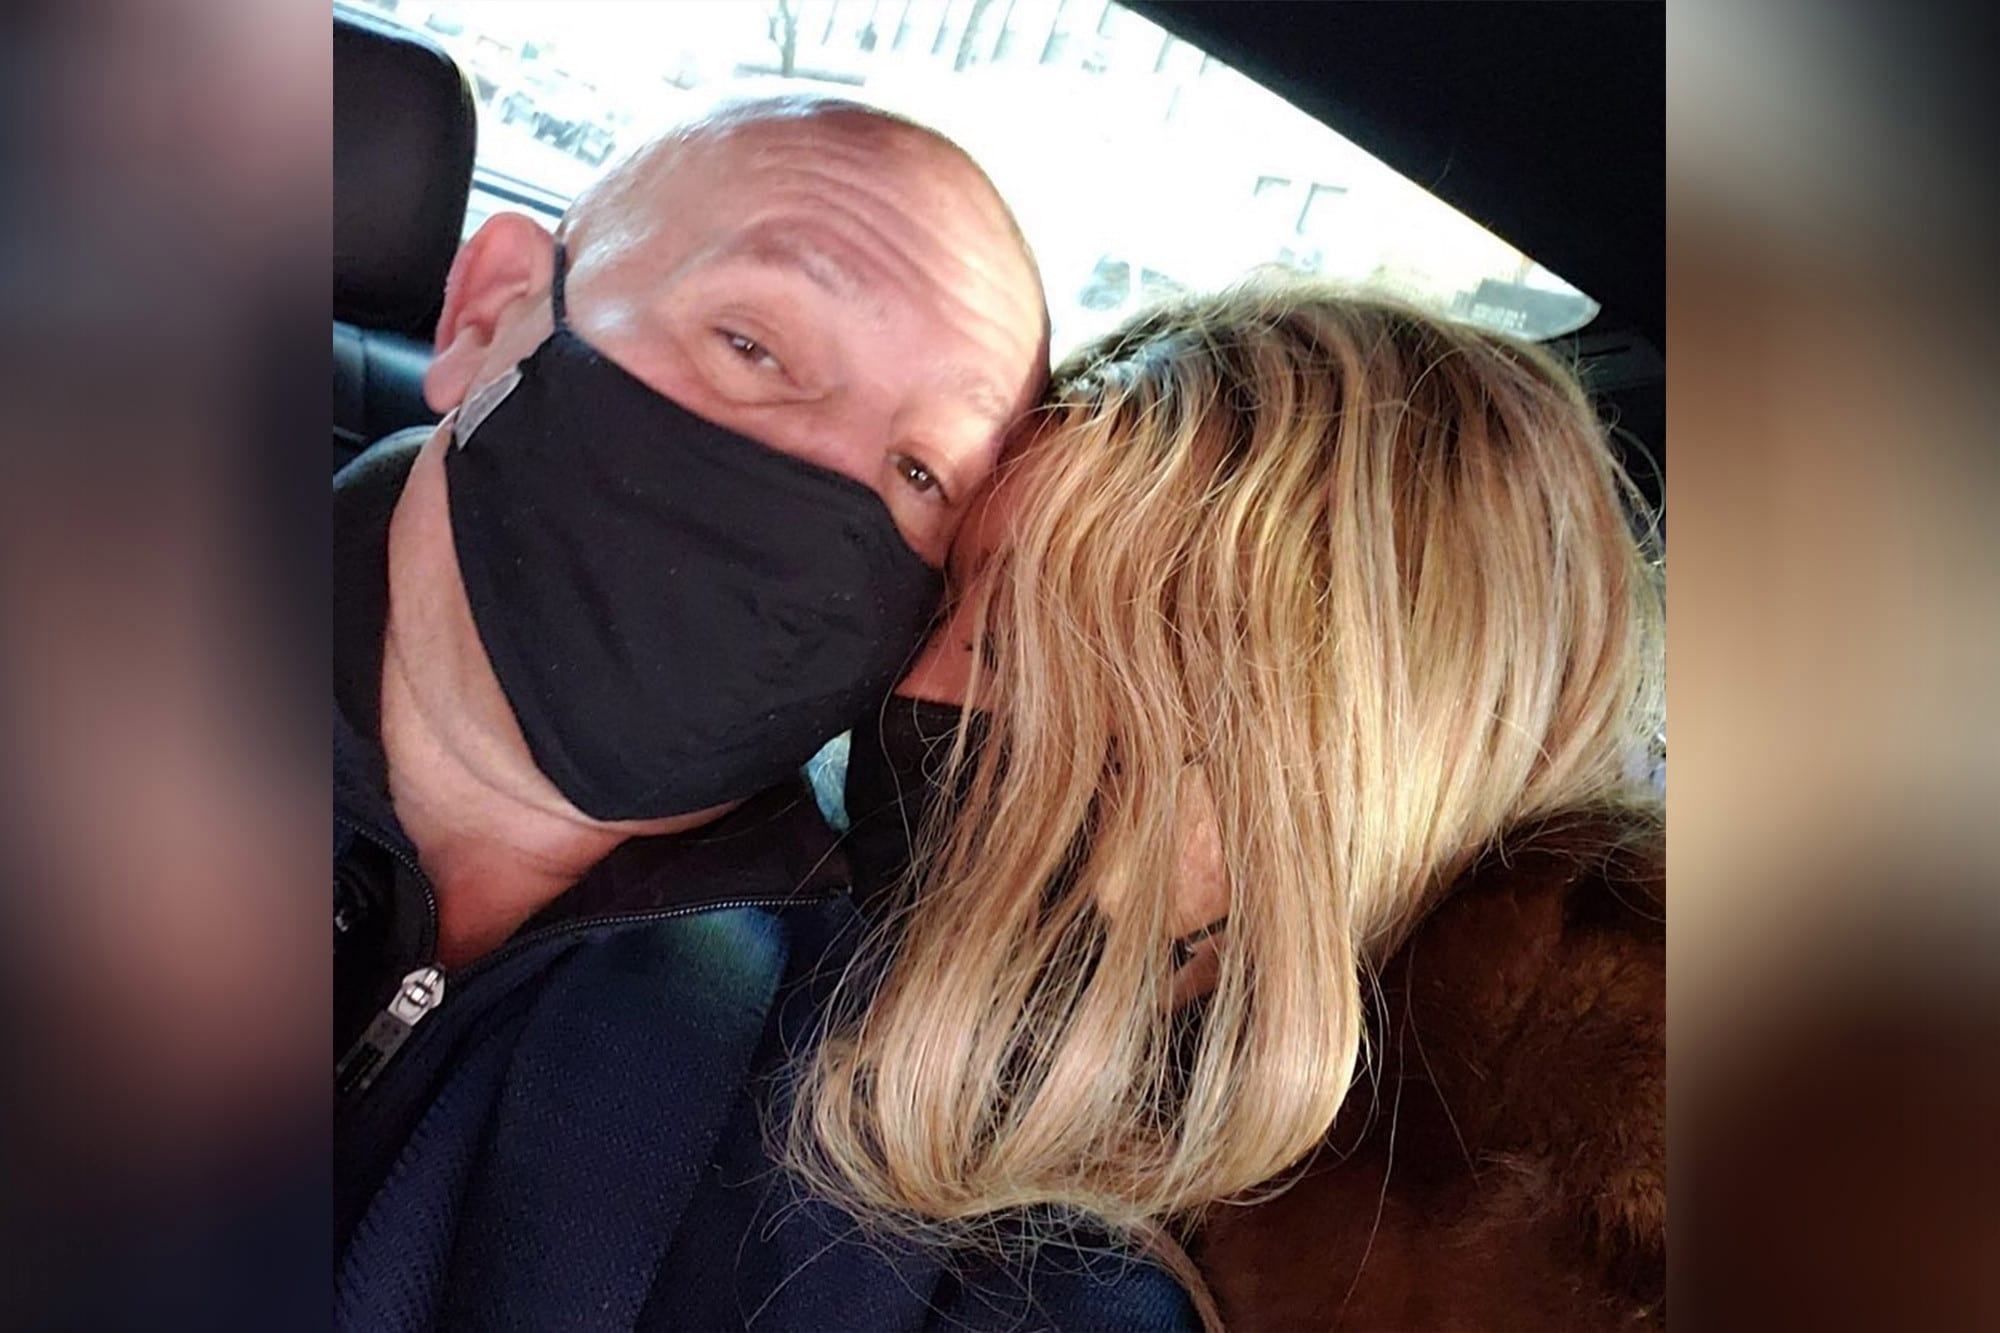 Who is Wendy Williams dating?